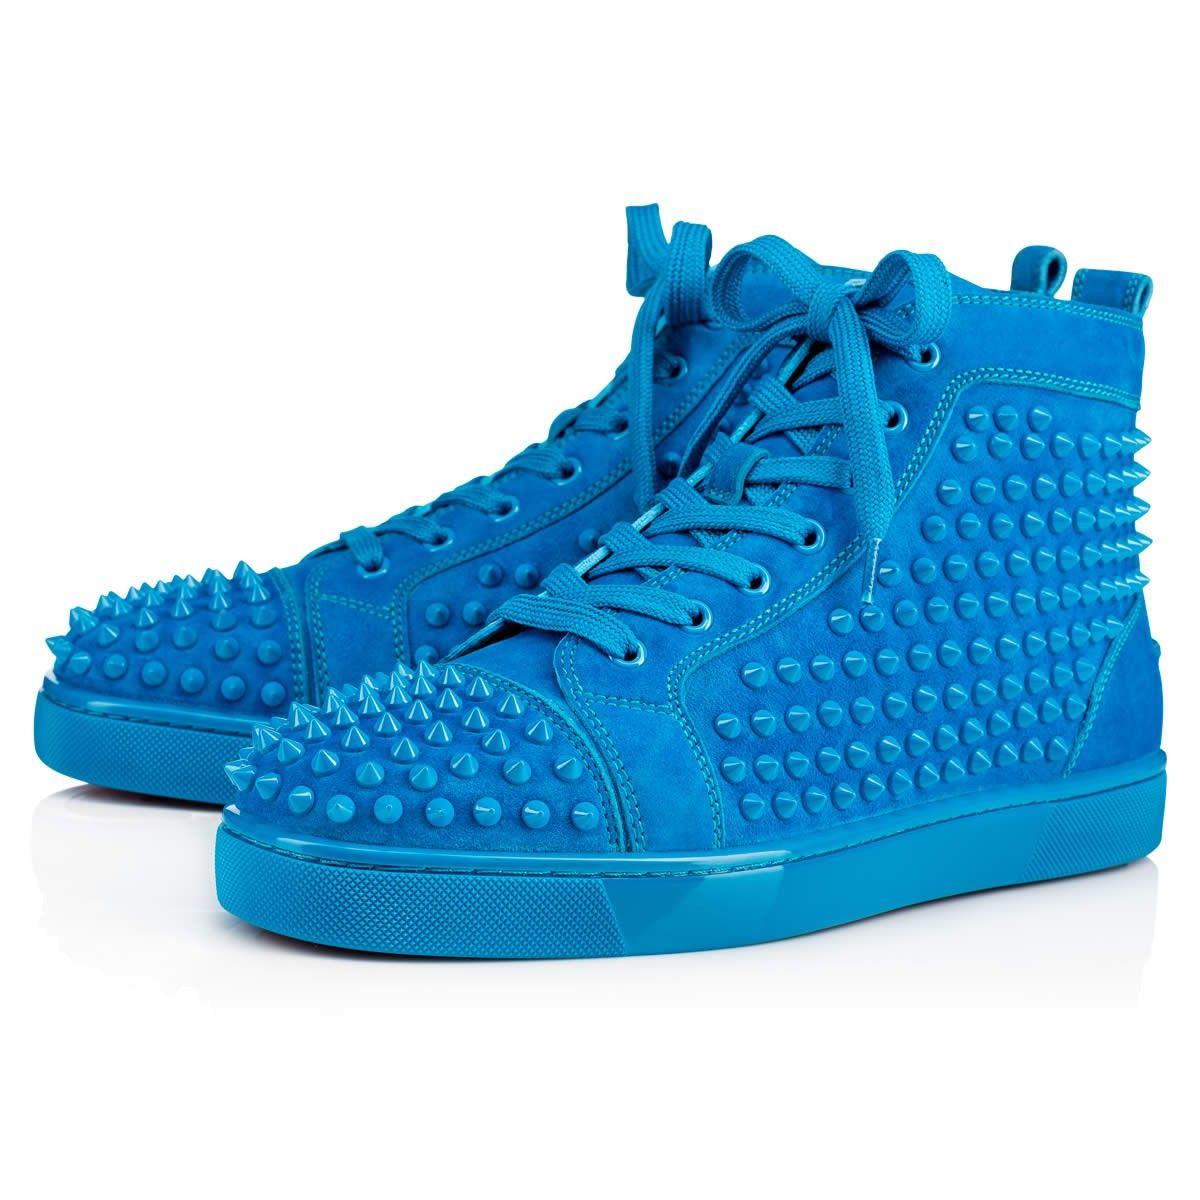 b5c86d660aeb CHRISTIAN LOUBOUTIN Louis Spikes Men S Flat Egyptian Blue Suede - Men Shoes  - Christian Louboutin.  christianlouboutin  shoes